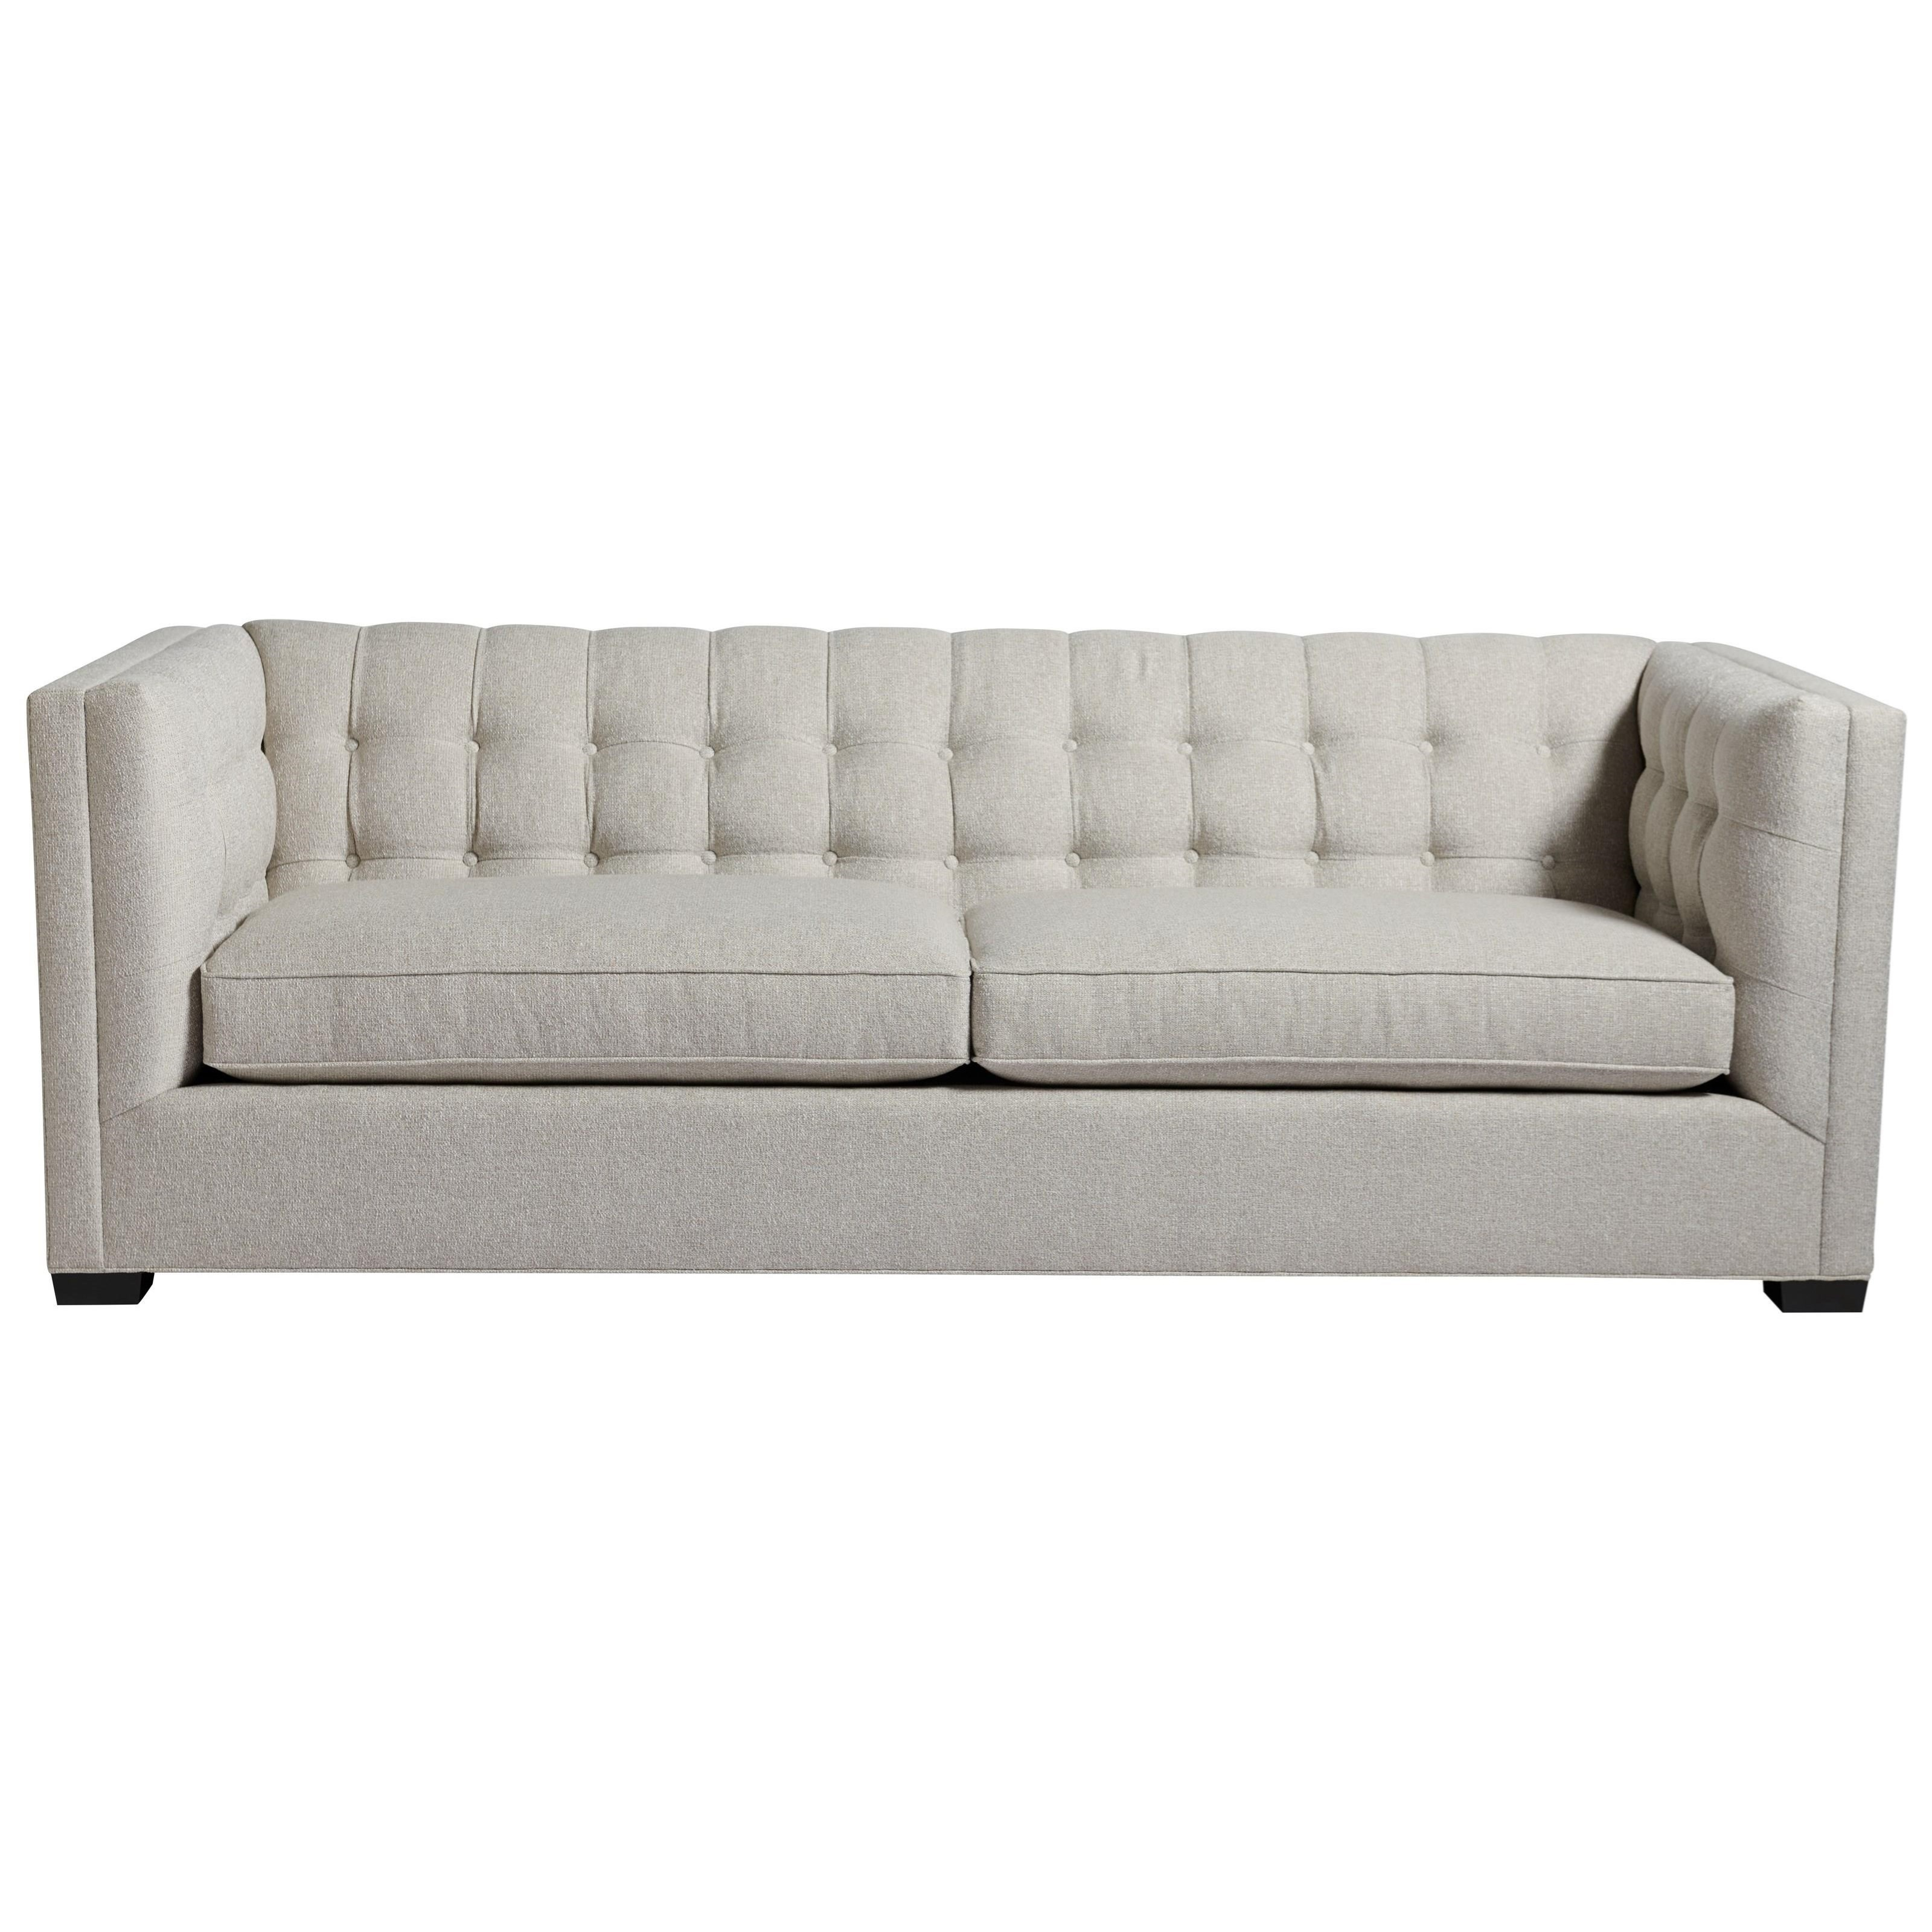 Quincey Sofa with Button Tufting